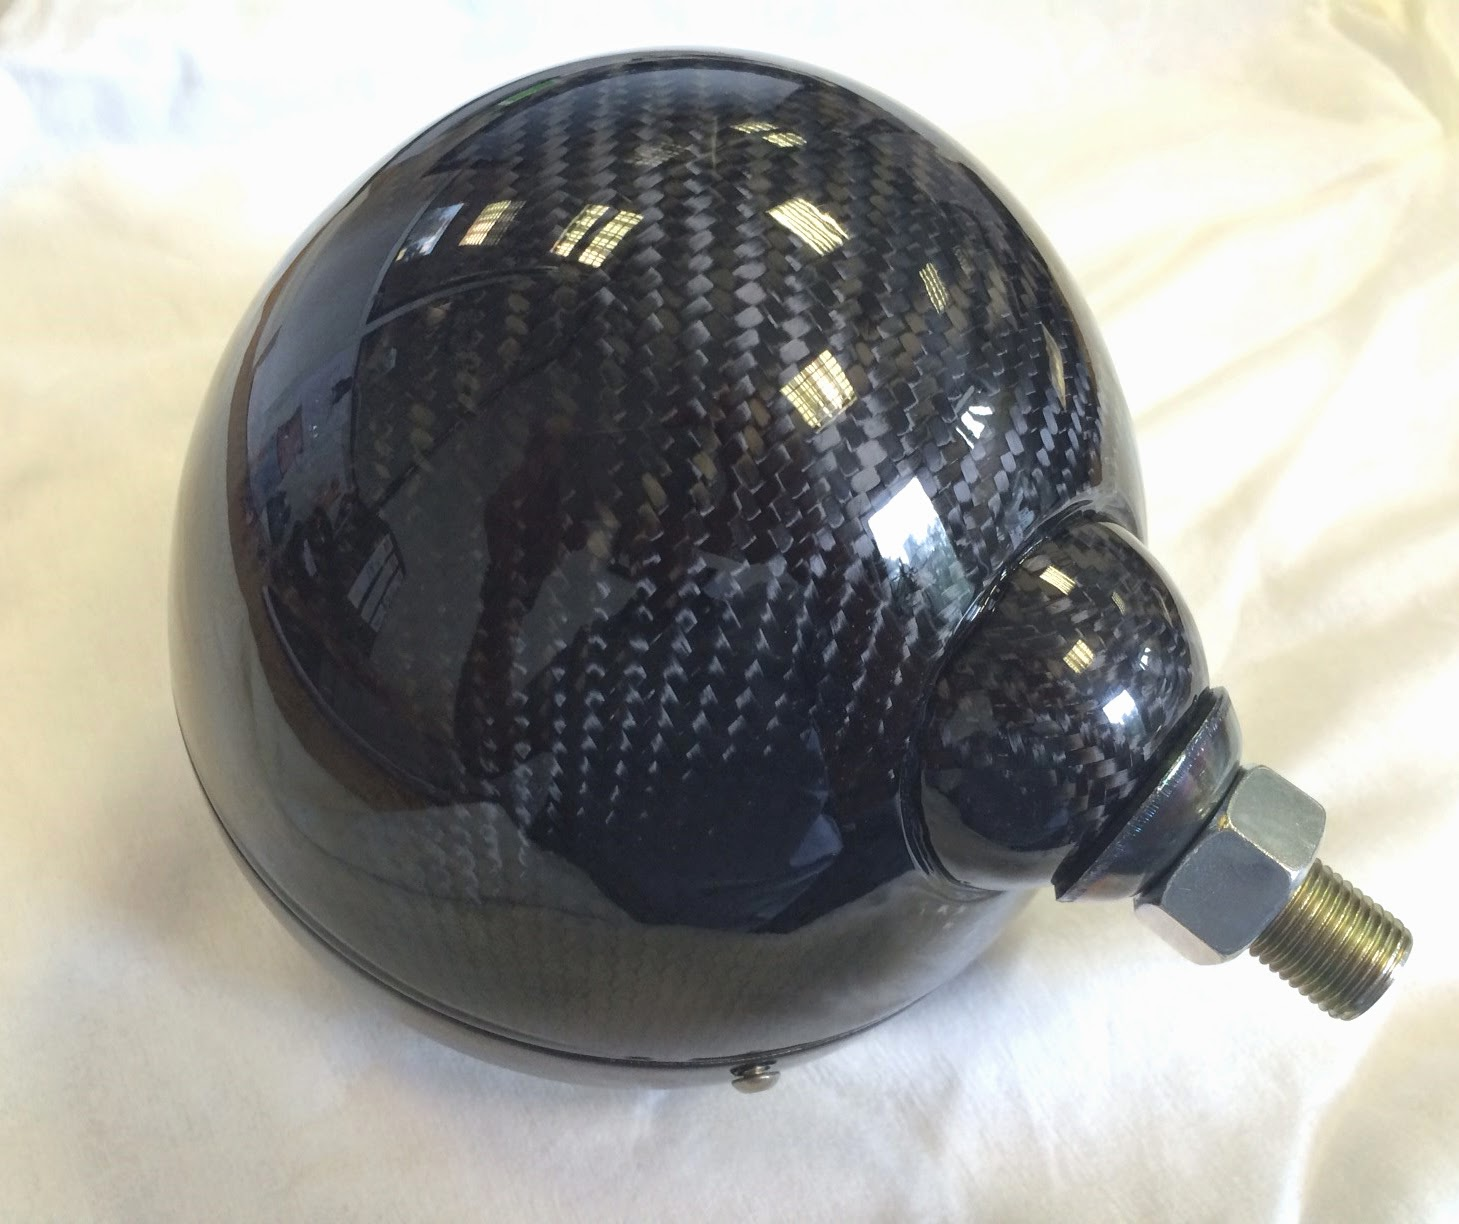 Caterham carbon fibre headlight bowls, freshly lacquered and looking amazing.